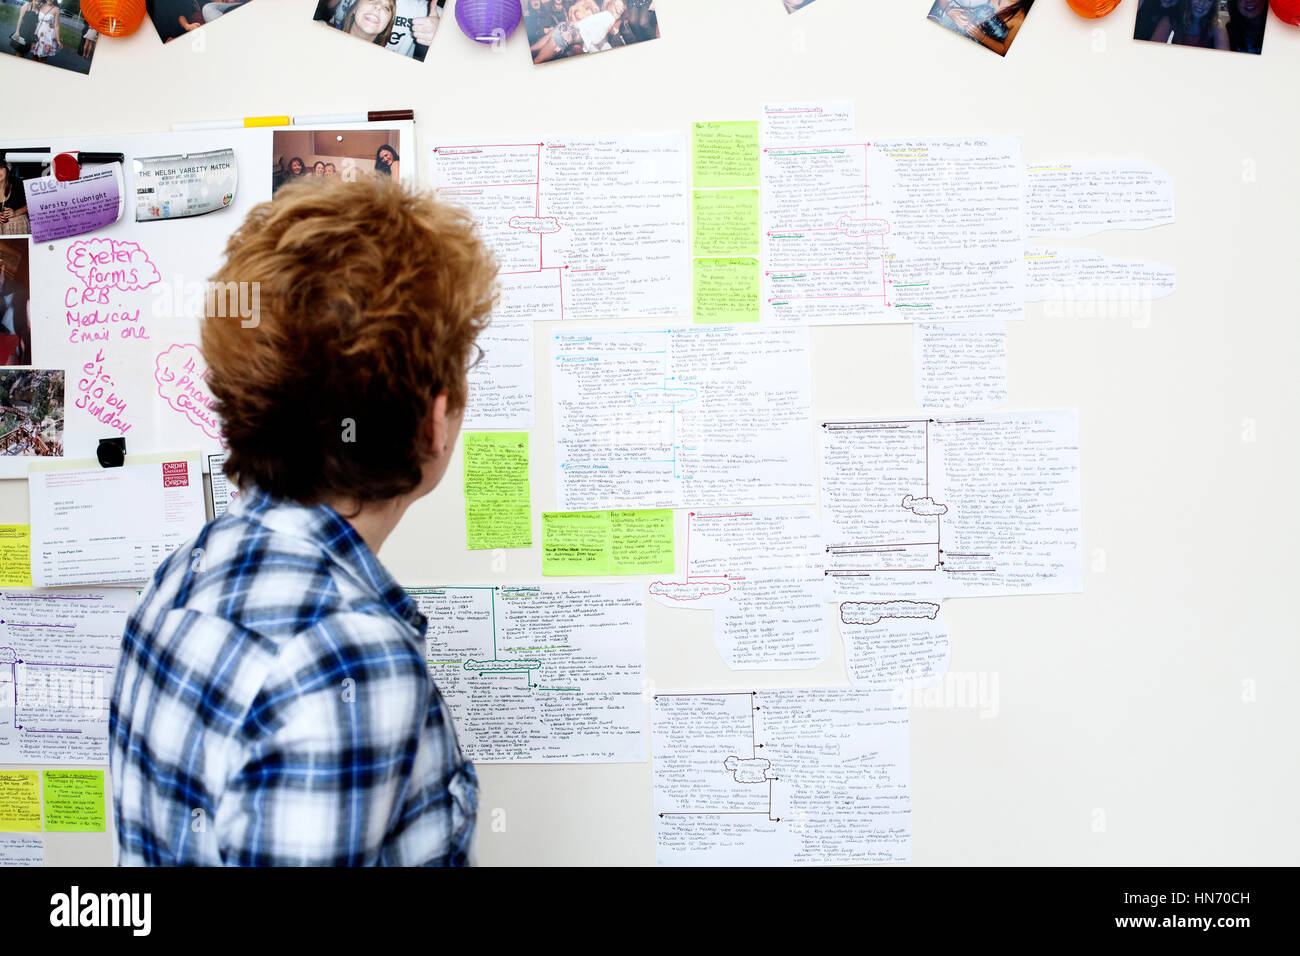 A students revision board in student accommodation covered in revision notes for forthcoming degree examinations - Stock Image